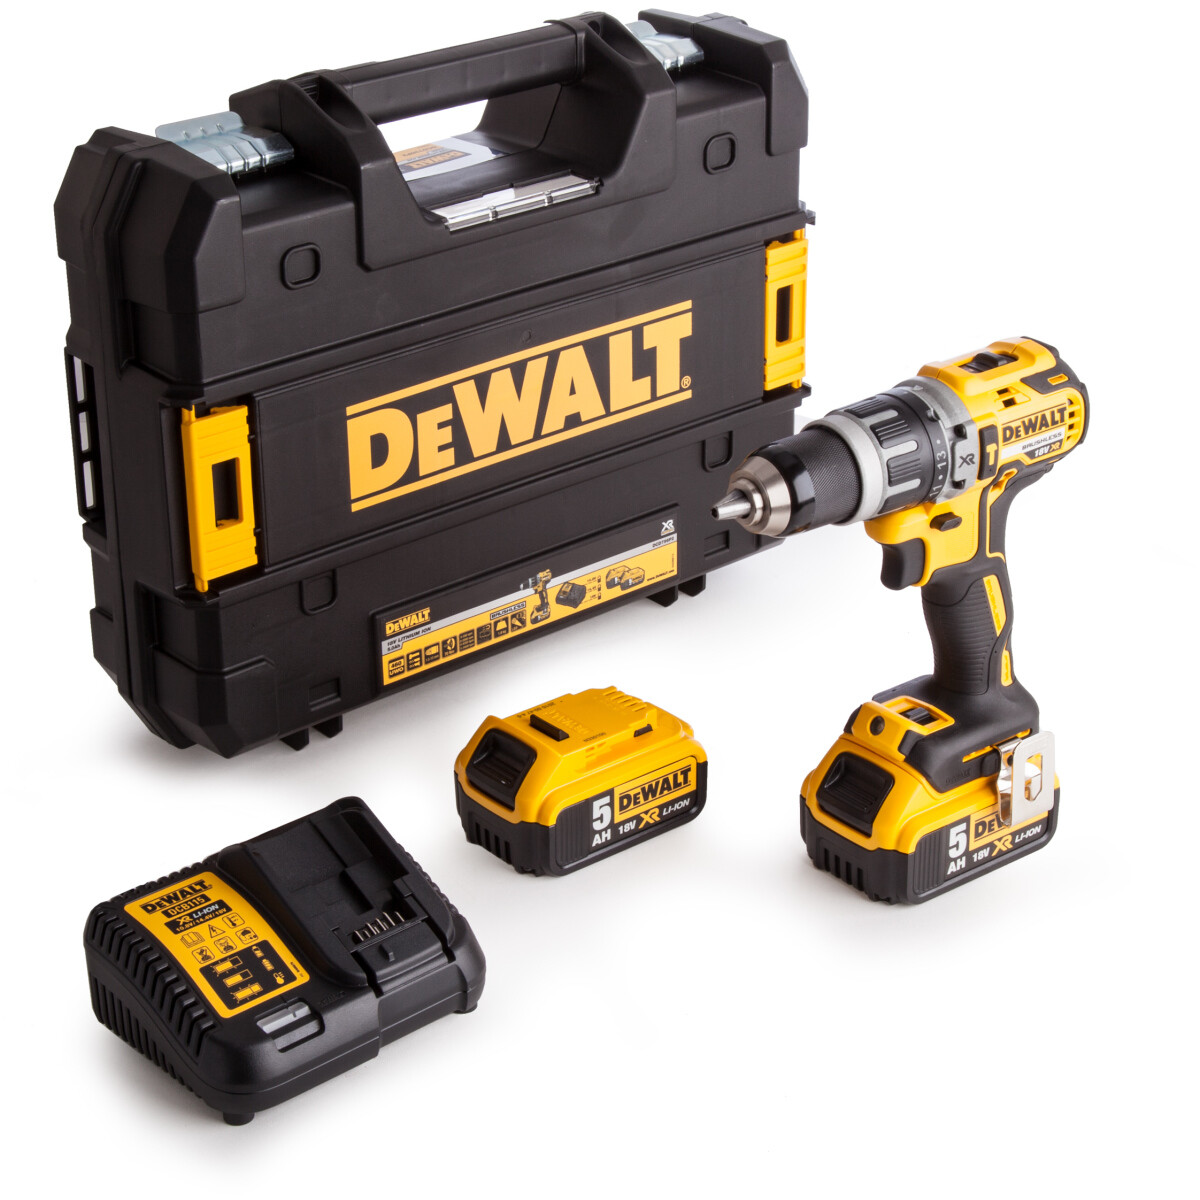 Dewalt DCD796P2 18V XR Brushless Combi Drill with 2x 5.0Ah Batteries in Case